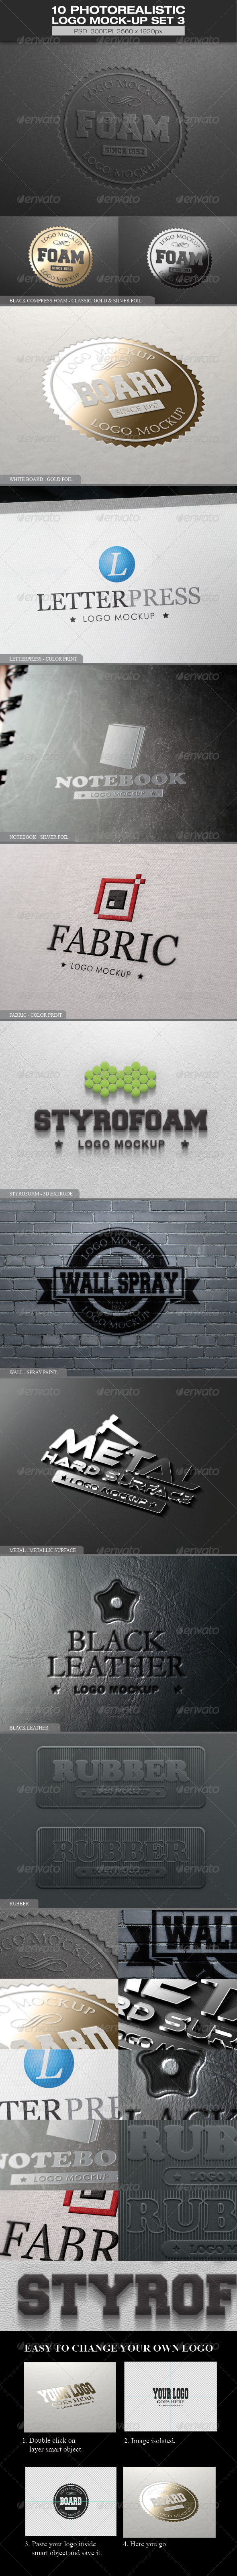 10 Photorealistic Logo Mock-up Set 3 - Logo Product Mock-Ups